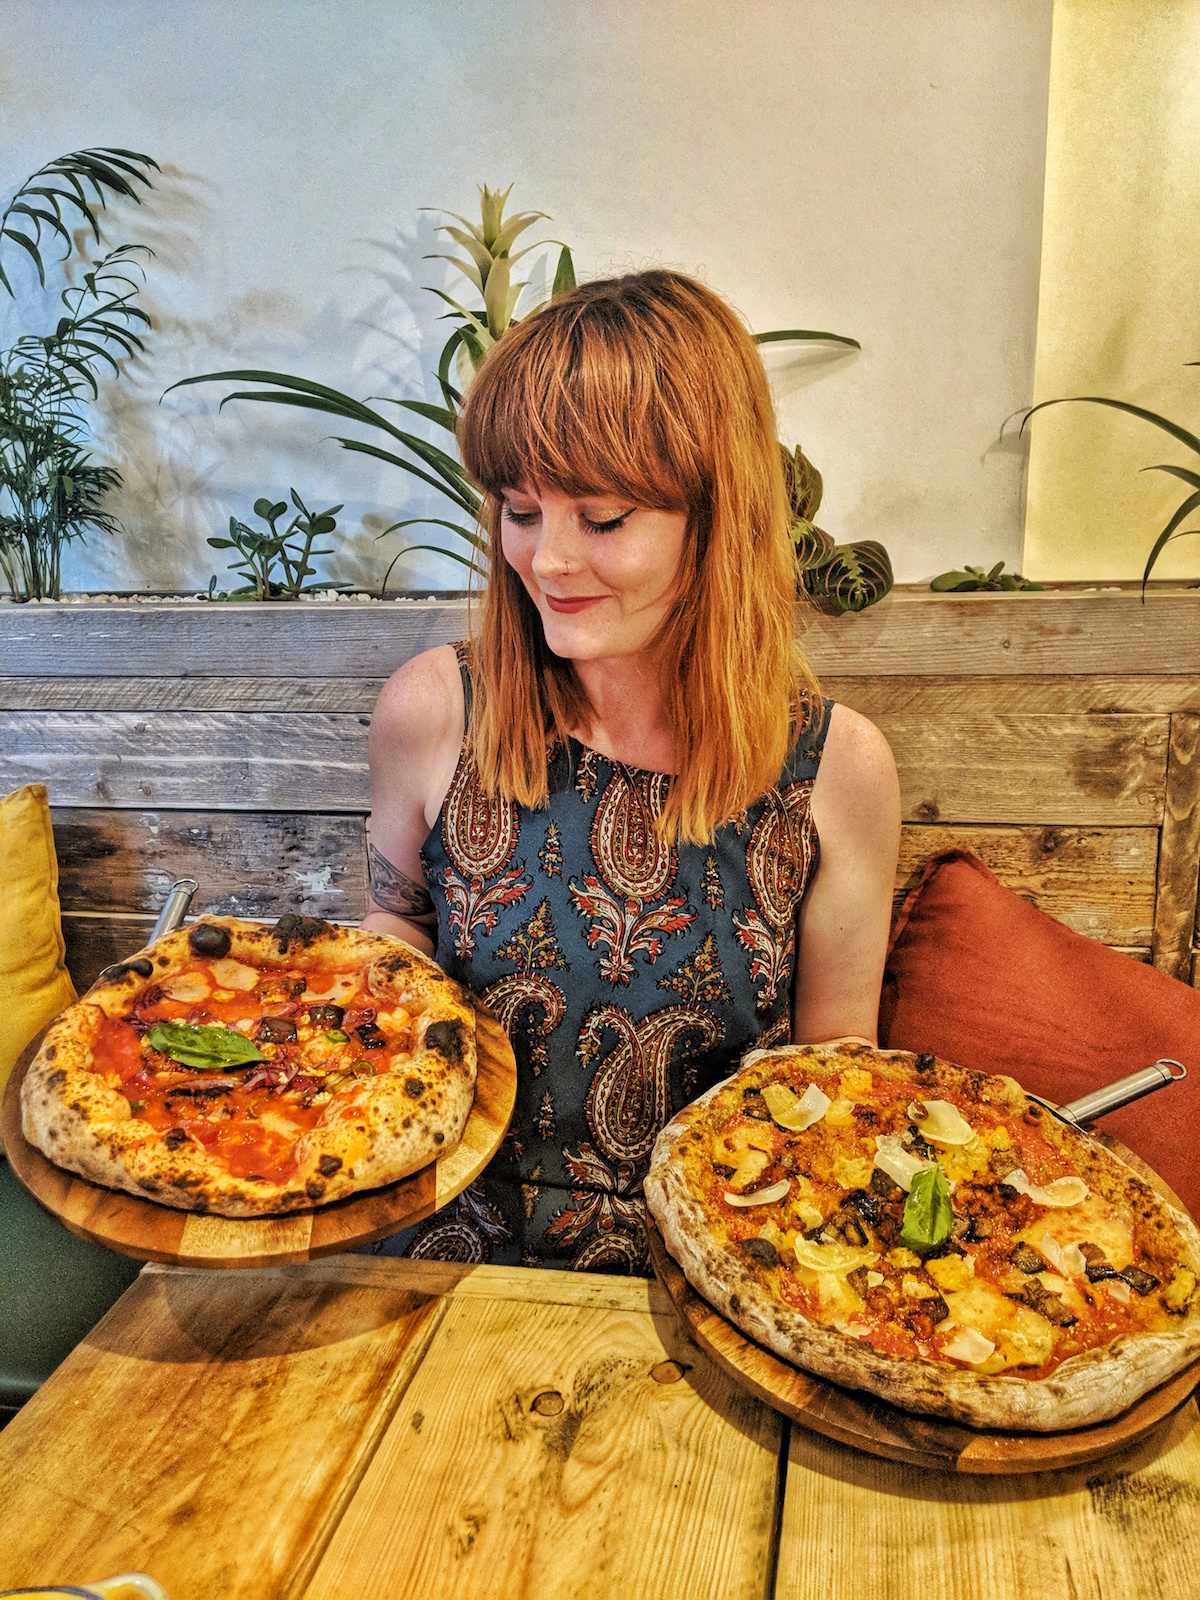 Pizzas from Purezza in Camden that are entirely vegan & absolutely delicious!